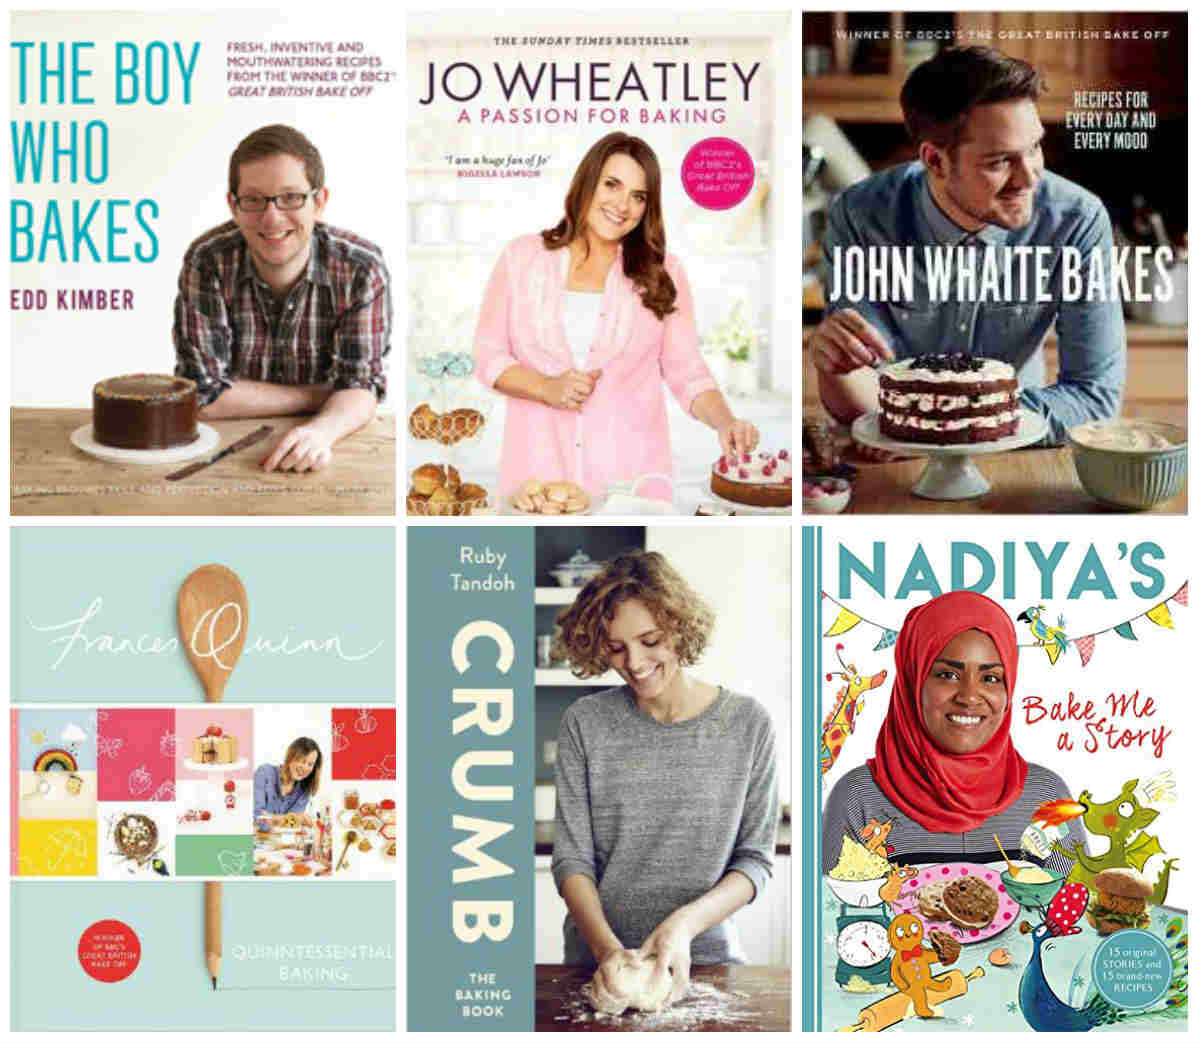 The Boy Who Bakes, A Passion For Baking, John Whaite Bakes, Quinntessential Baking, Crumb, Nadiya's Bake Me A Story